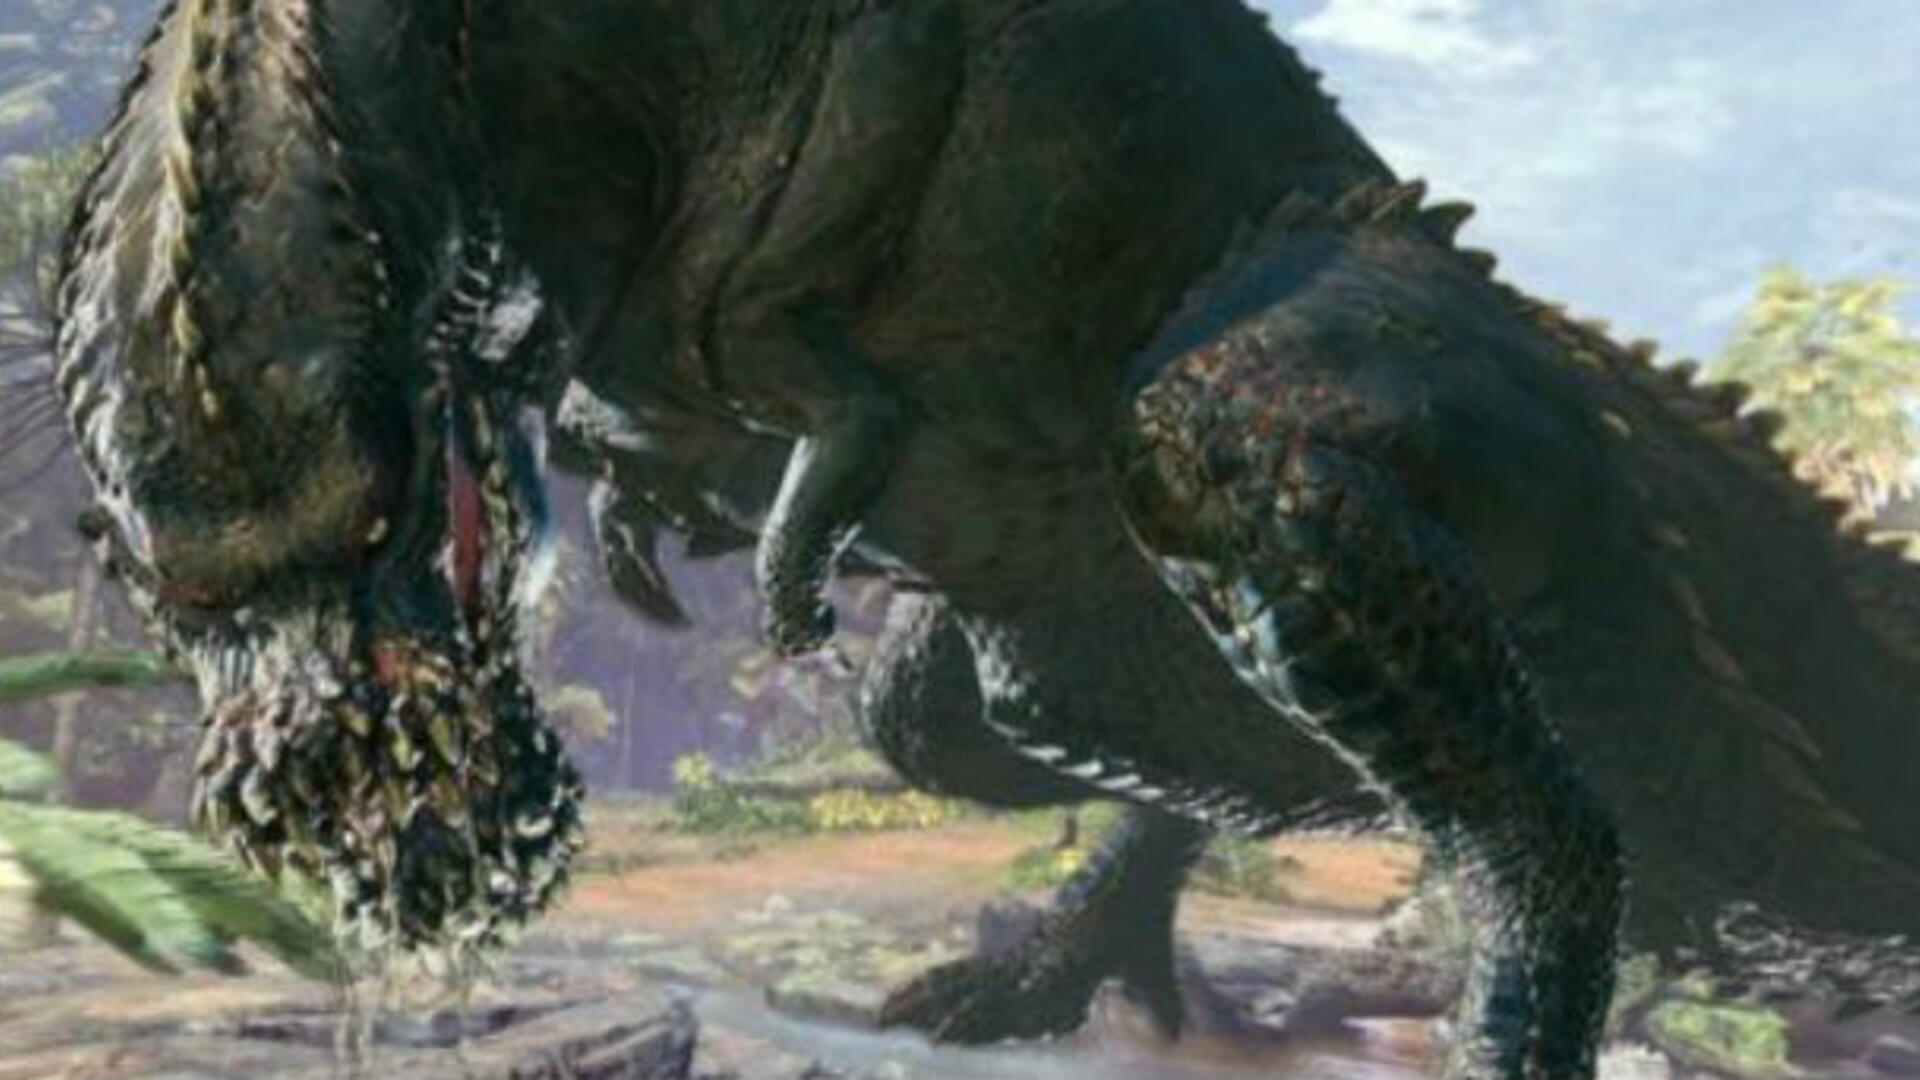 Monster Hunter Movie Set Pictures Show Tanks, But Not Monsters, Sadly